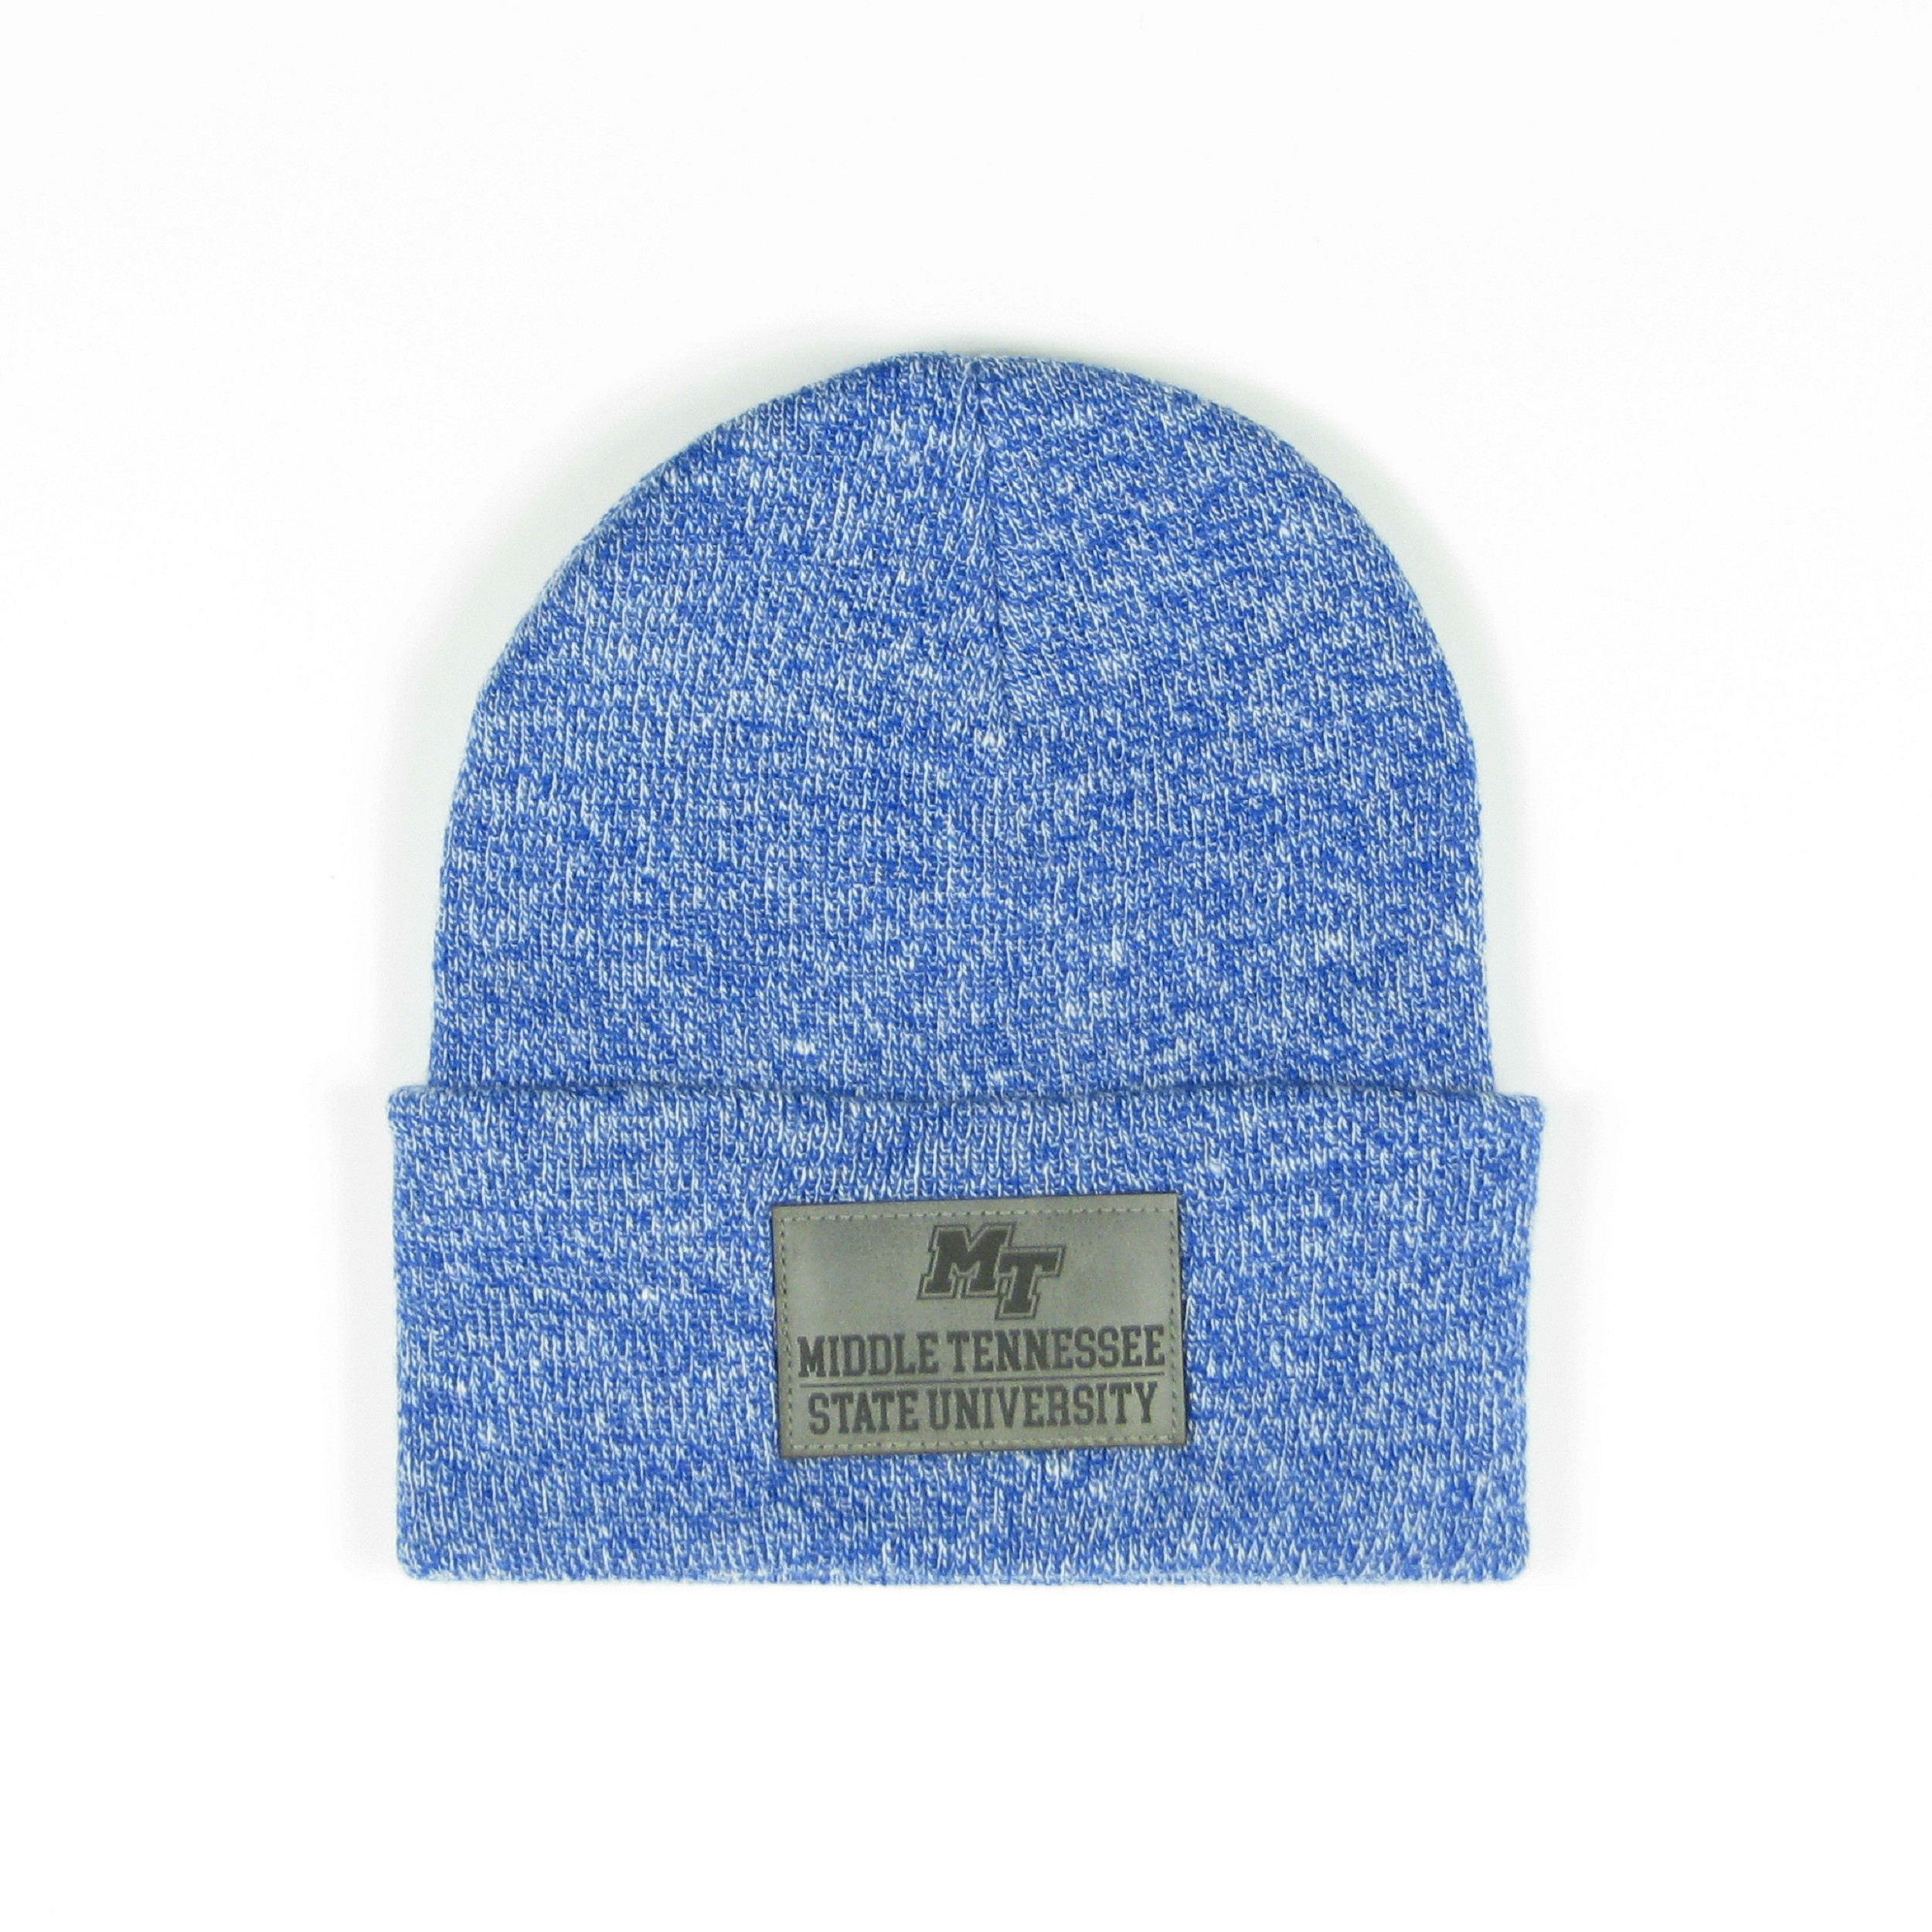 Middle Tennessee State University Cuffed Beanie